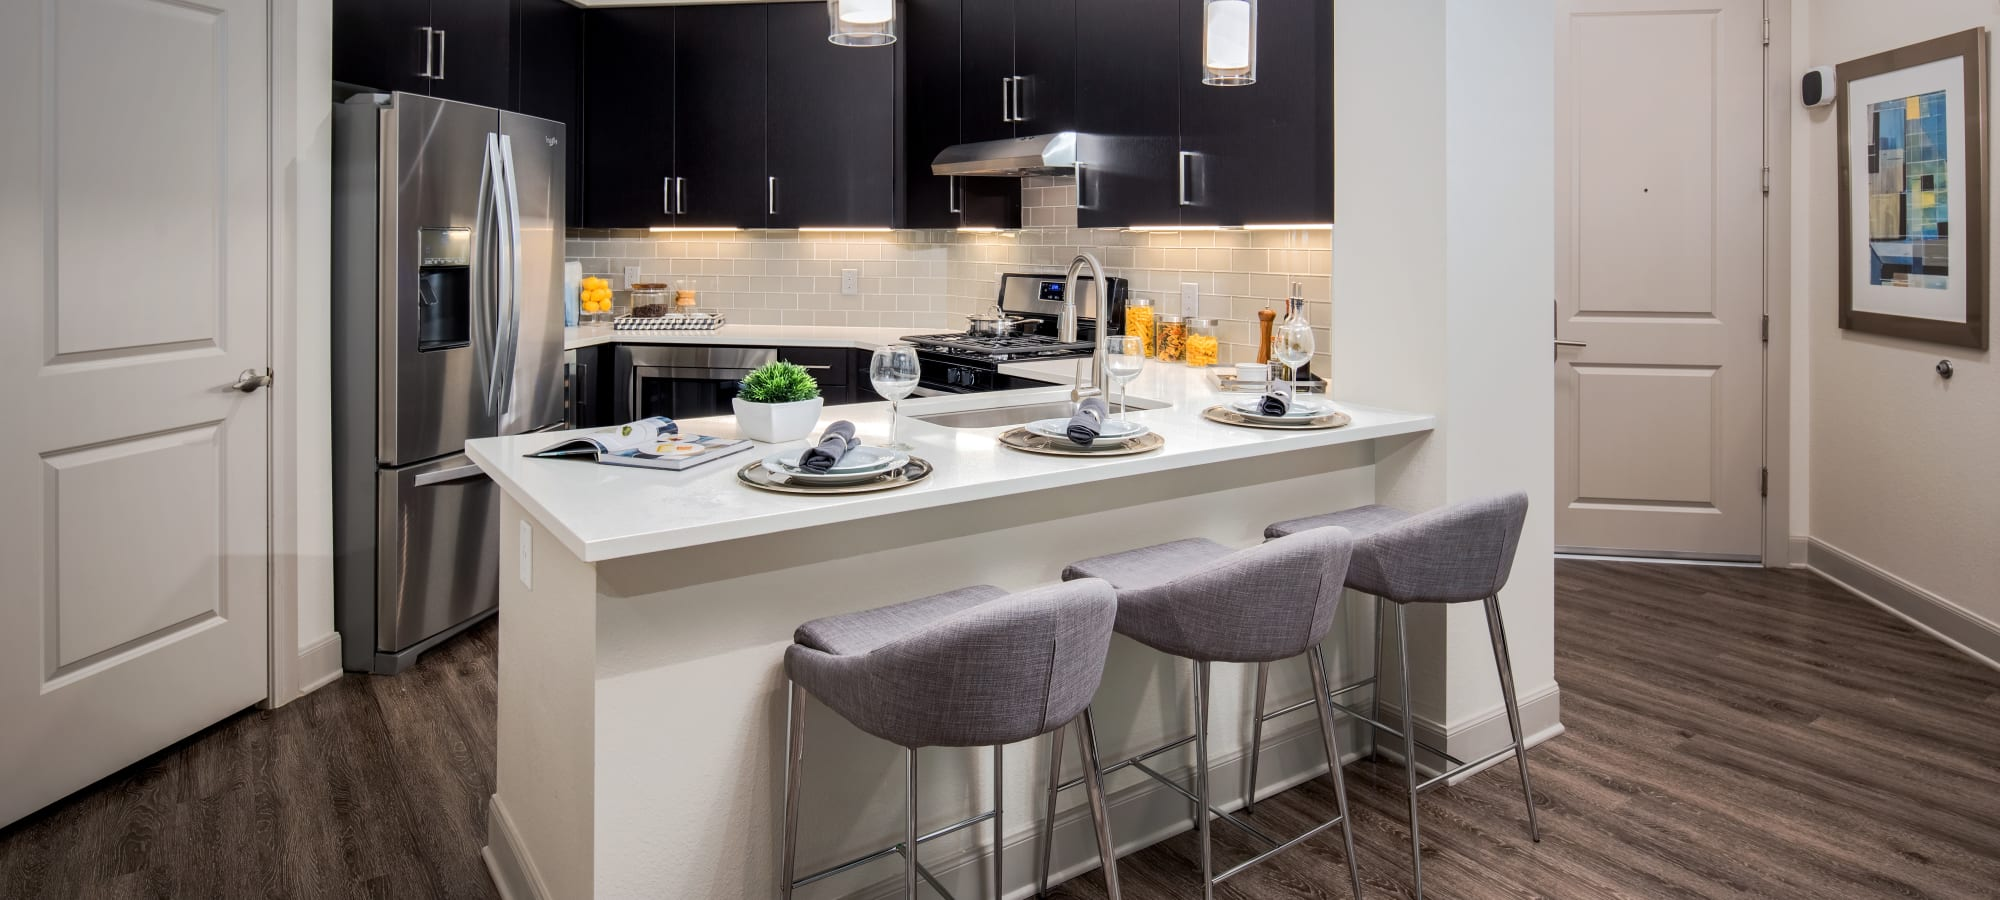 Island with breakfast bar in a model home's kitchen at The Core Scottsdale in Scottsdale, Arizona